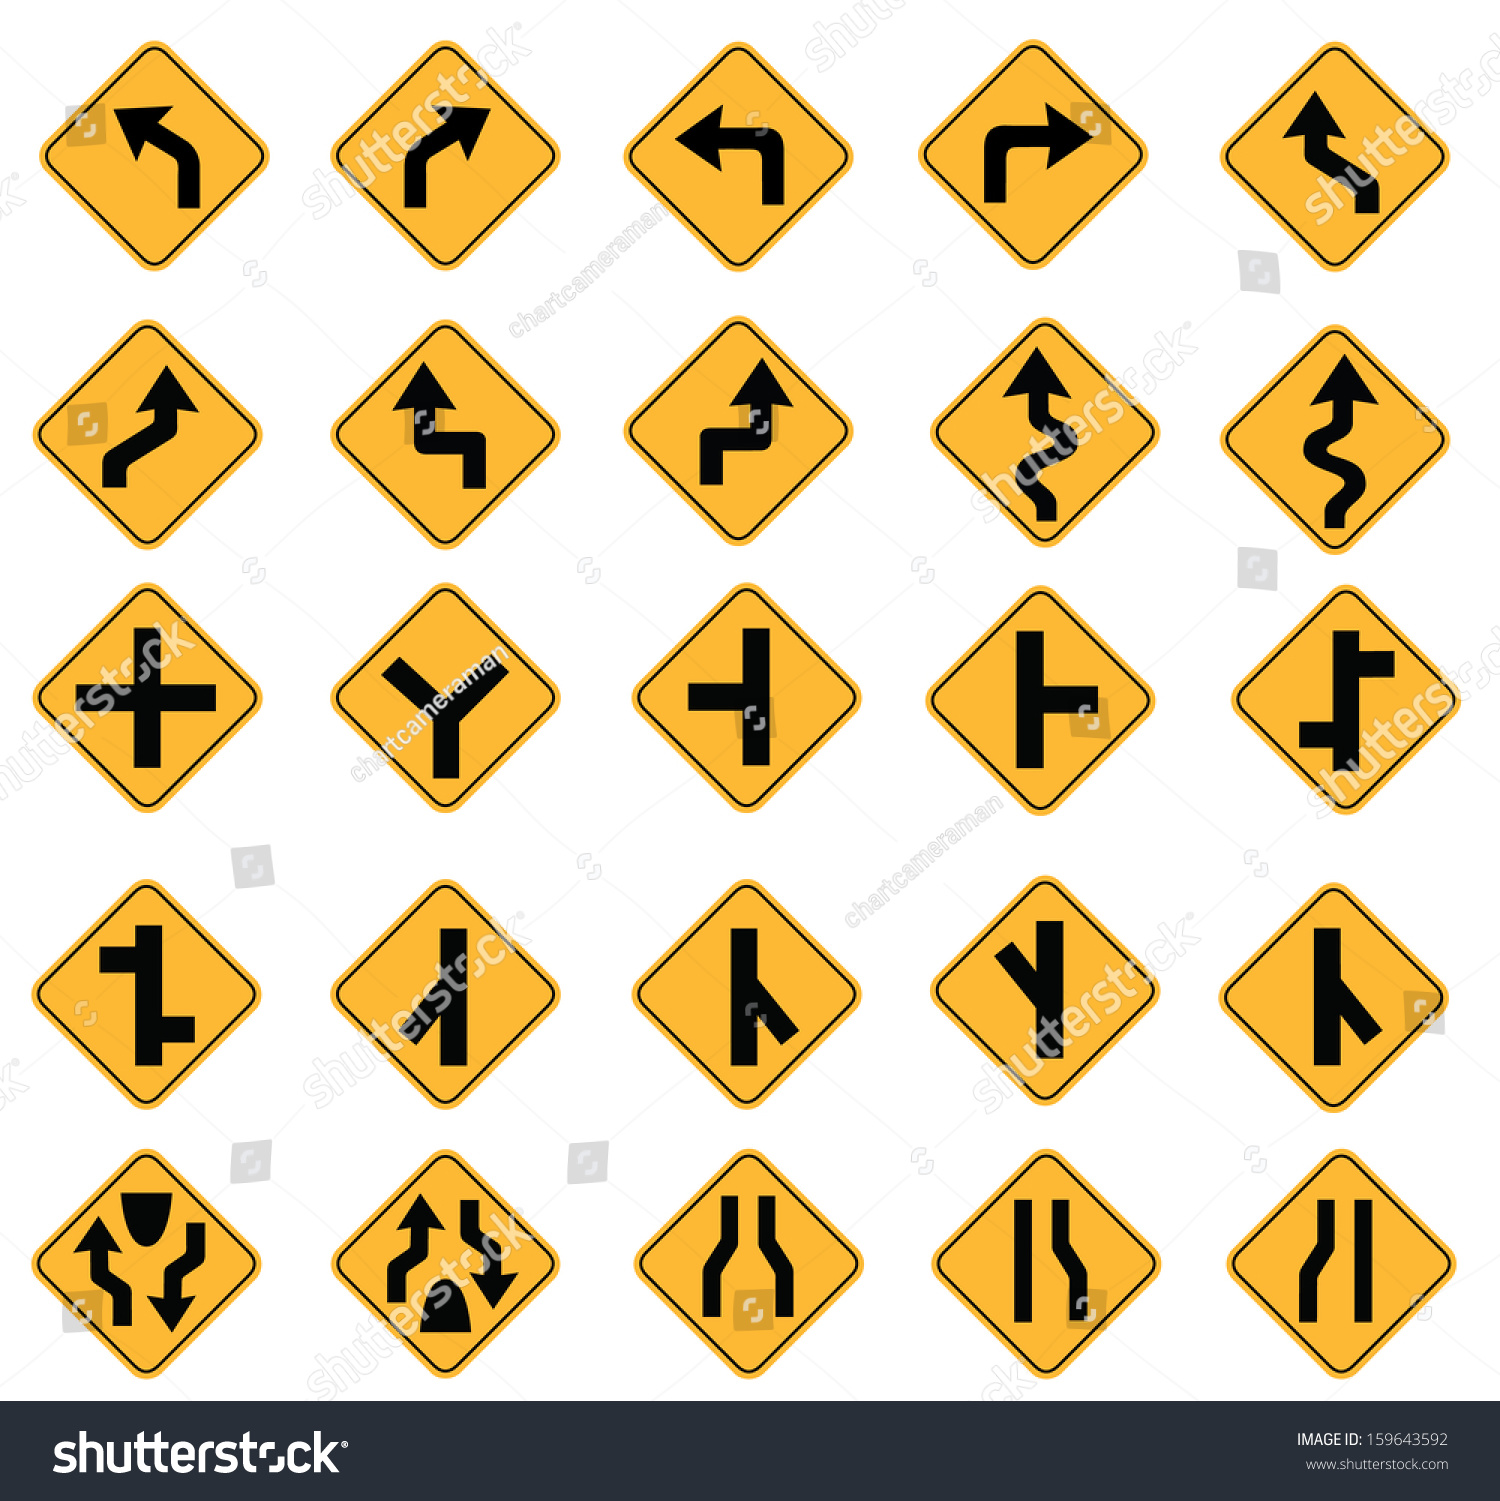 Yellow Road Signs Traffic Signs Vector Stock Vector 159643592 ...